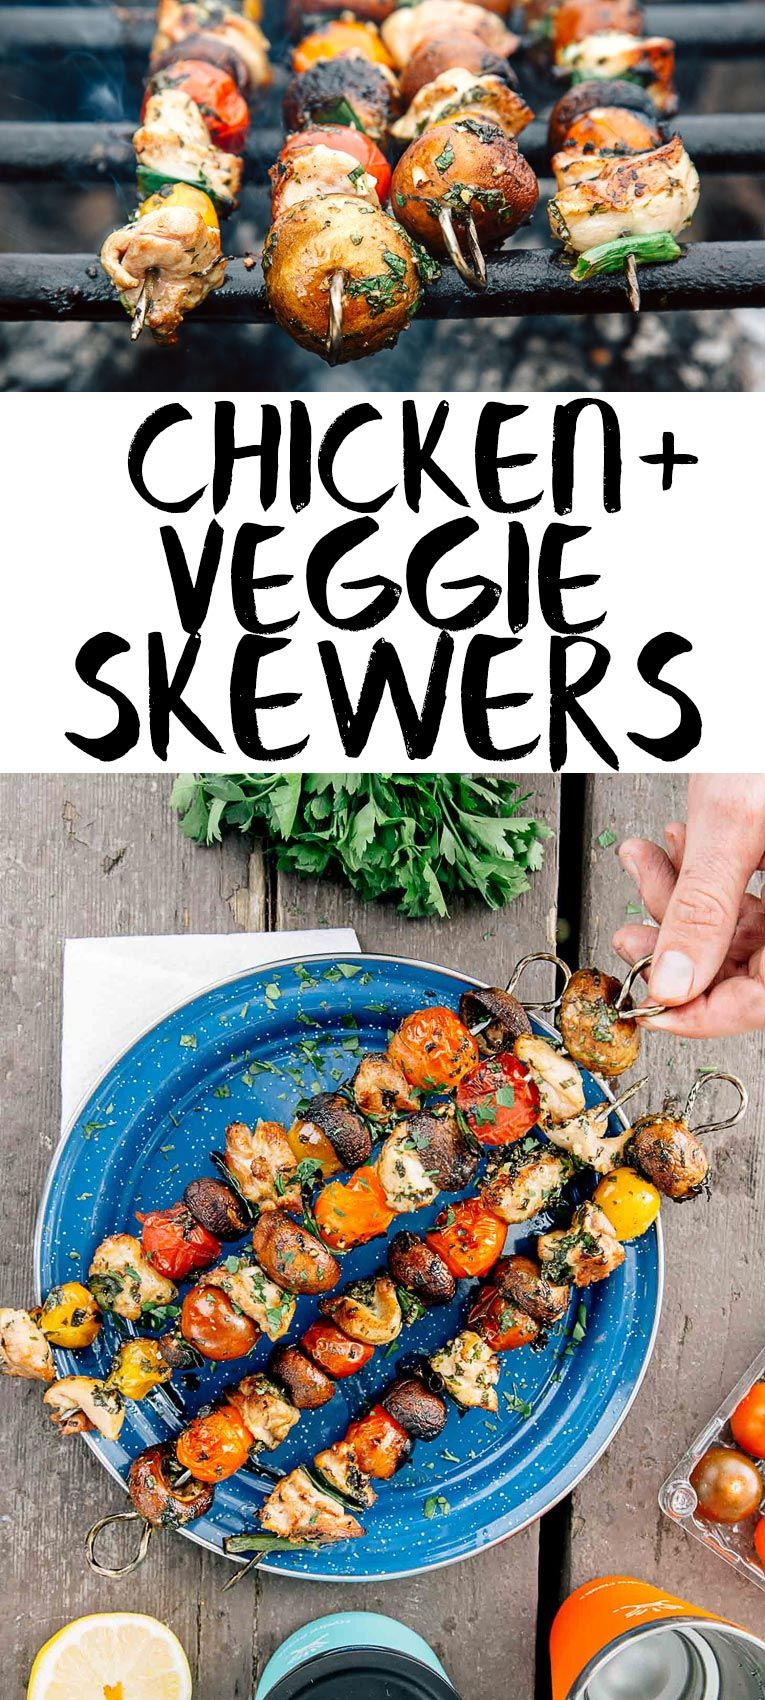 Grilled chicken veggie skewers recipe veggie skewers easy grilled chicken veggie skewers forumfinder Images